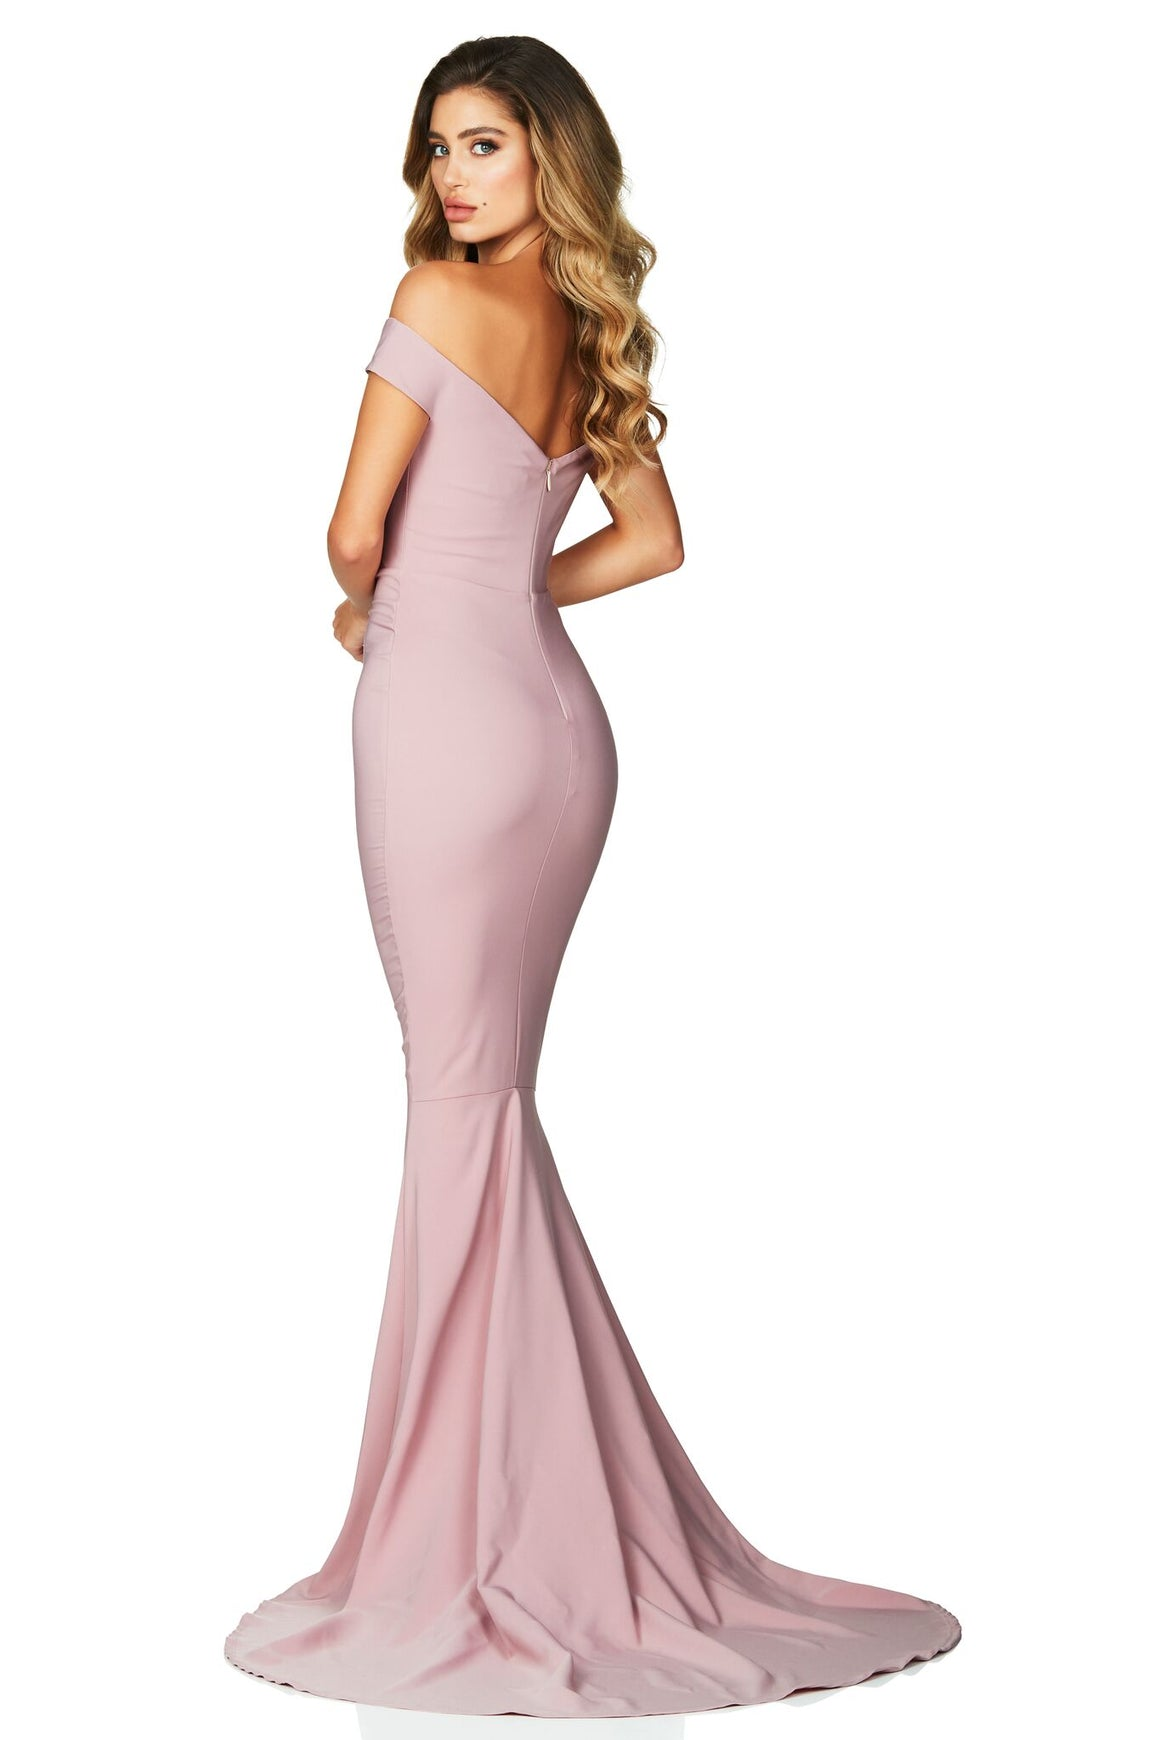 Allure Gown - Dusty Pink